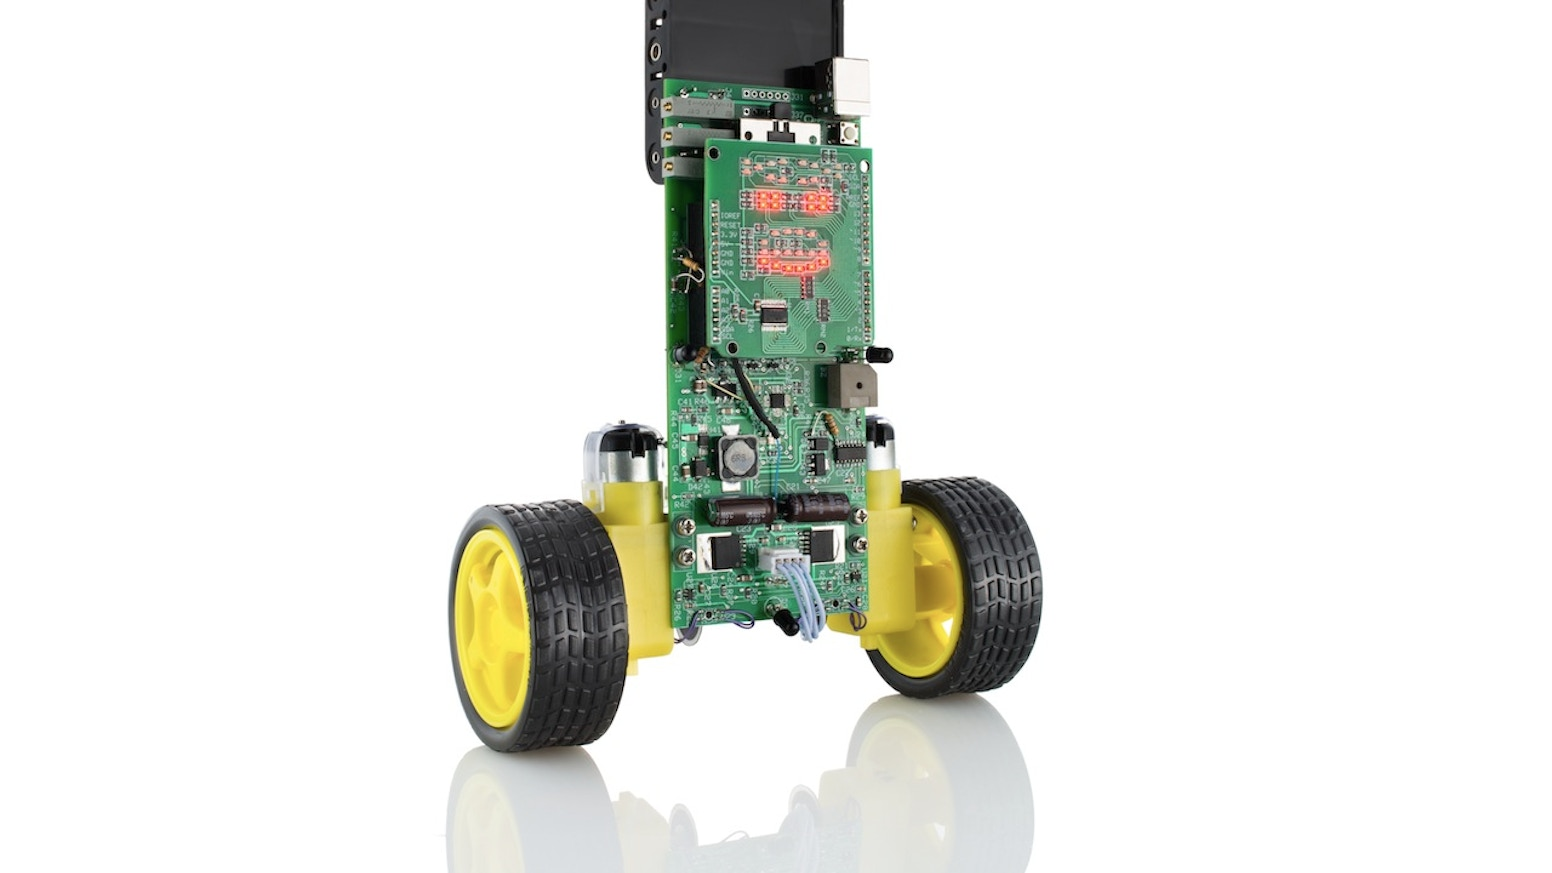 A low-cost, open-source, Arduino-compatible balancing robot for learning, hacking and delight